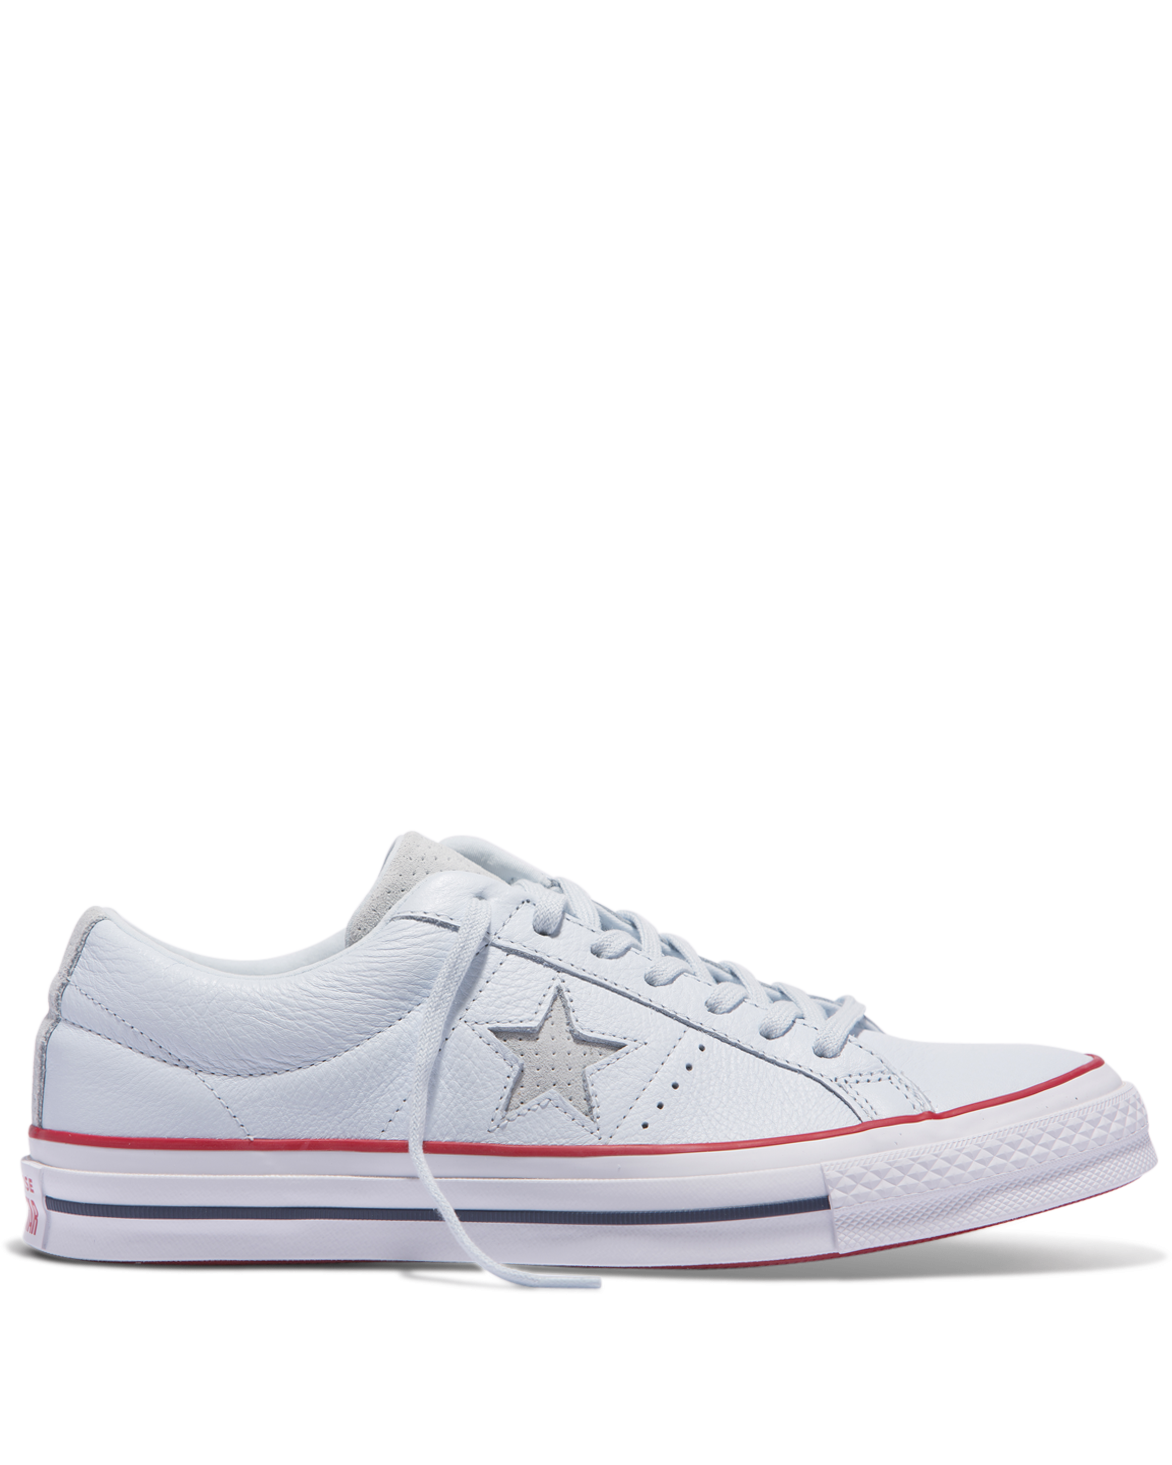 himno Nacional transacción dos  Converse One Star New Heritage Low Top - Blue Tint is a suede lace up  sneaker with iconic star detailing. S…   Converse one star, Best sneakers,  Coolest shoes ever